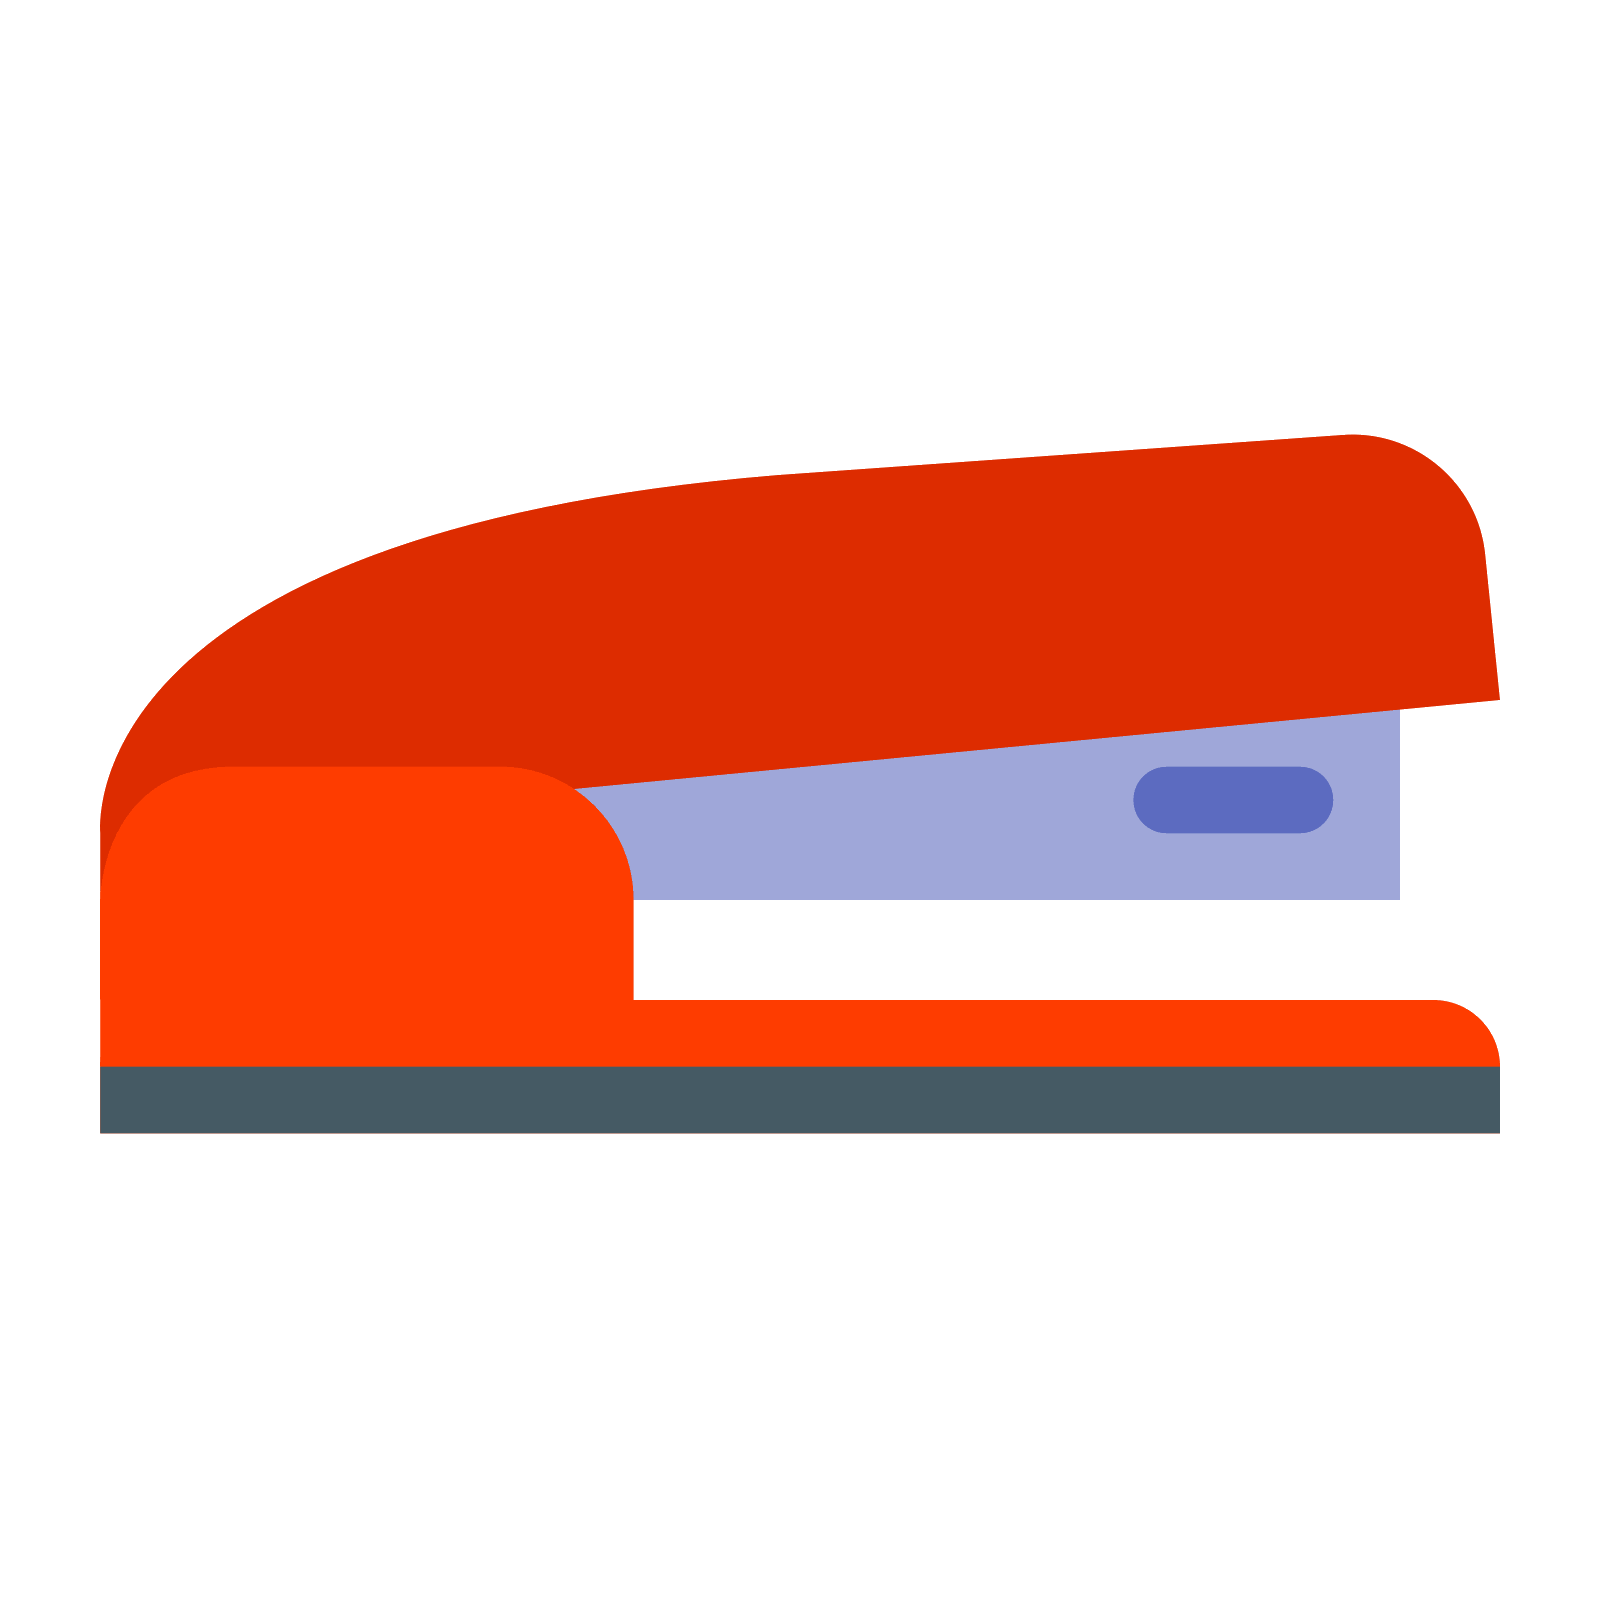 svg royalty free library Stapler Icon